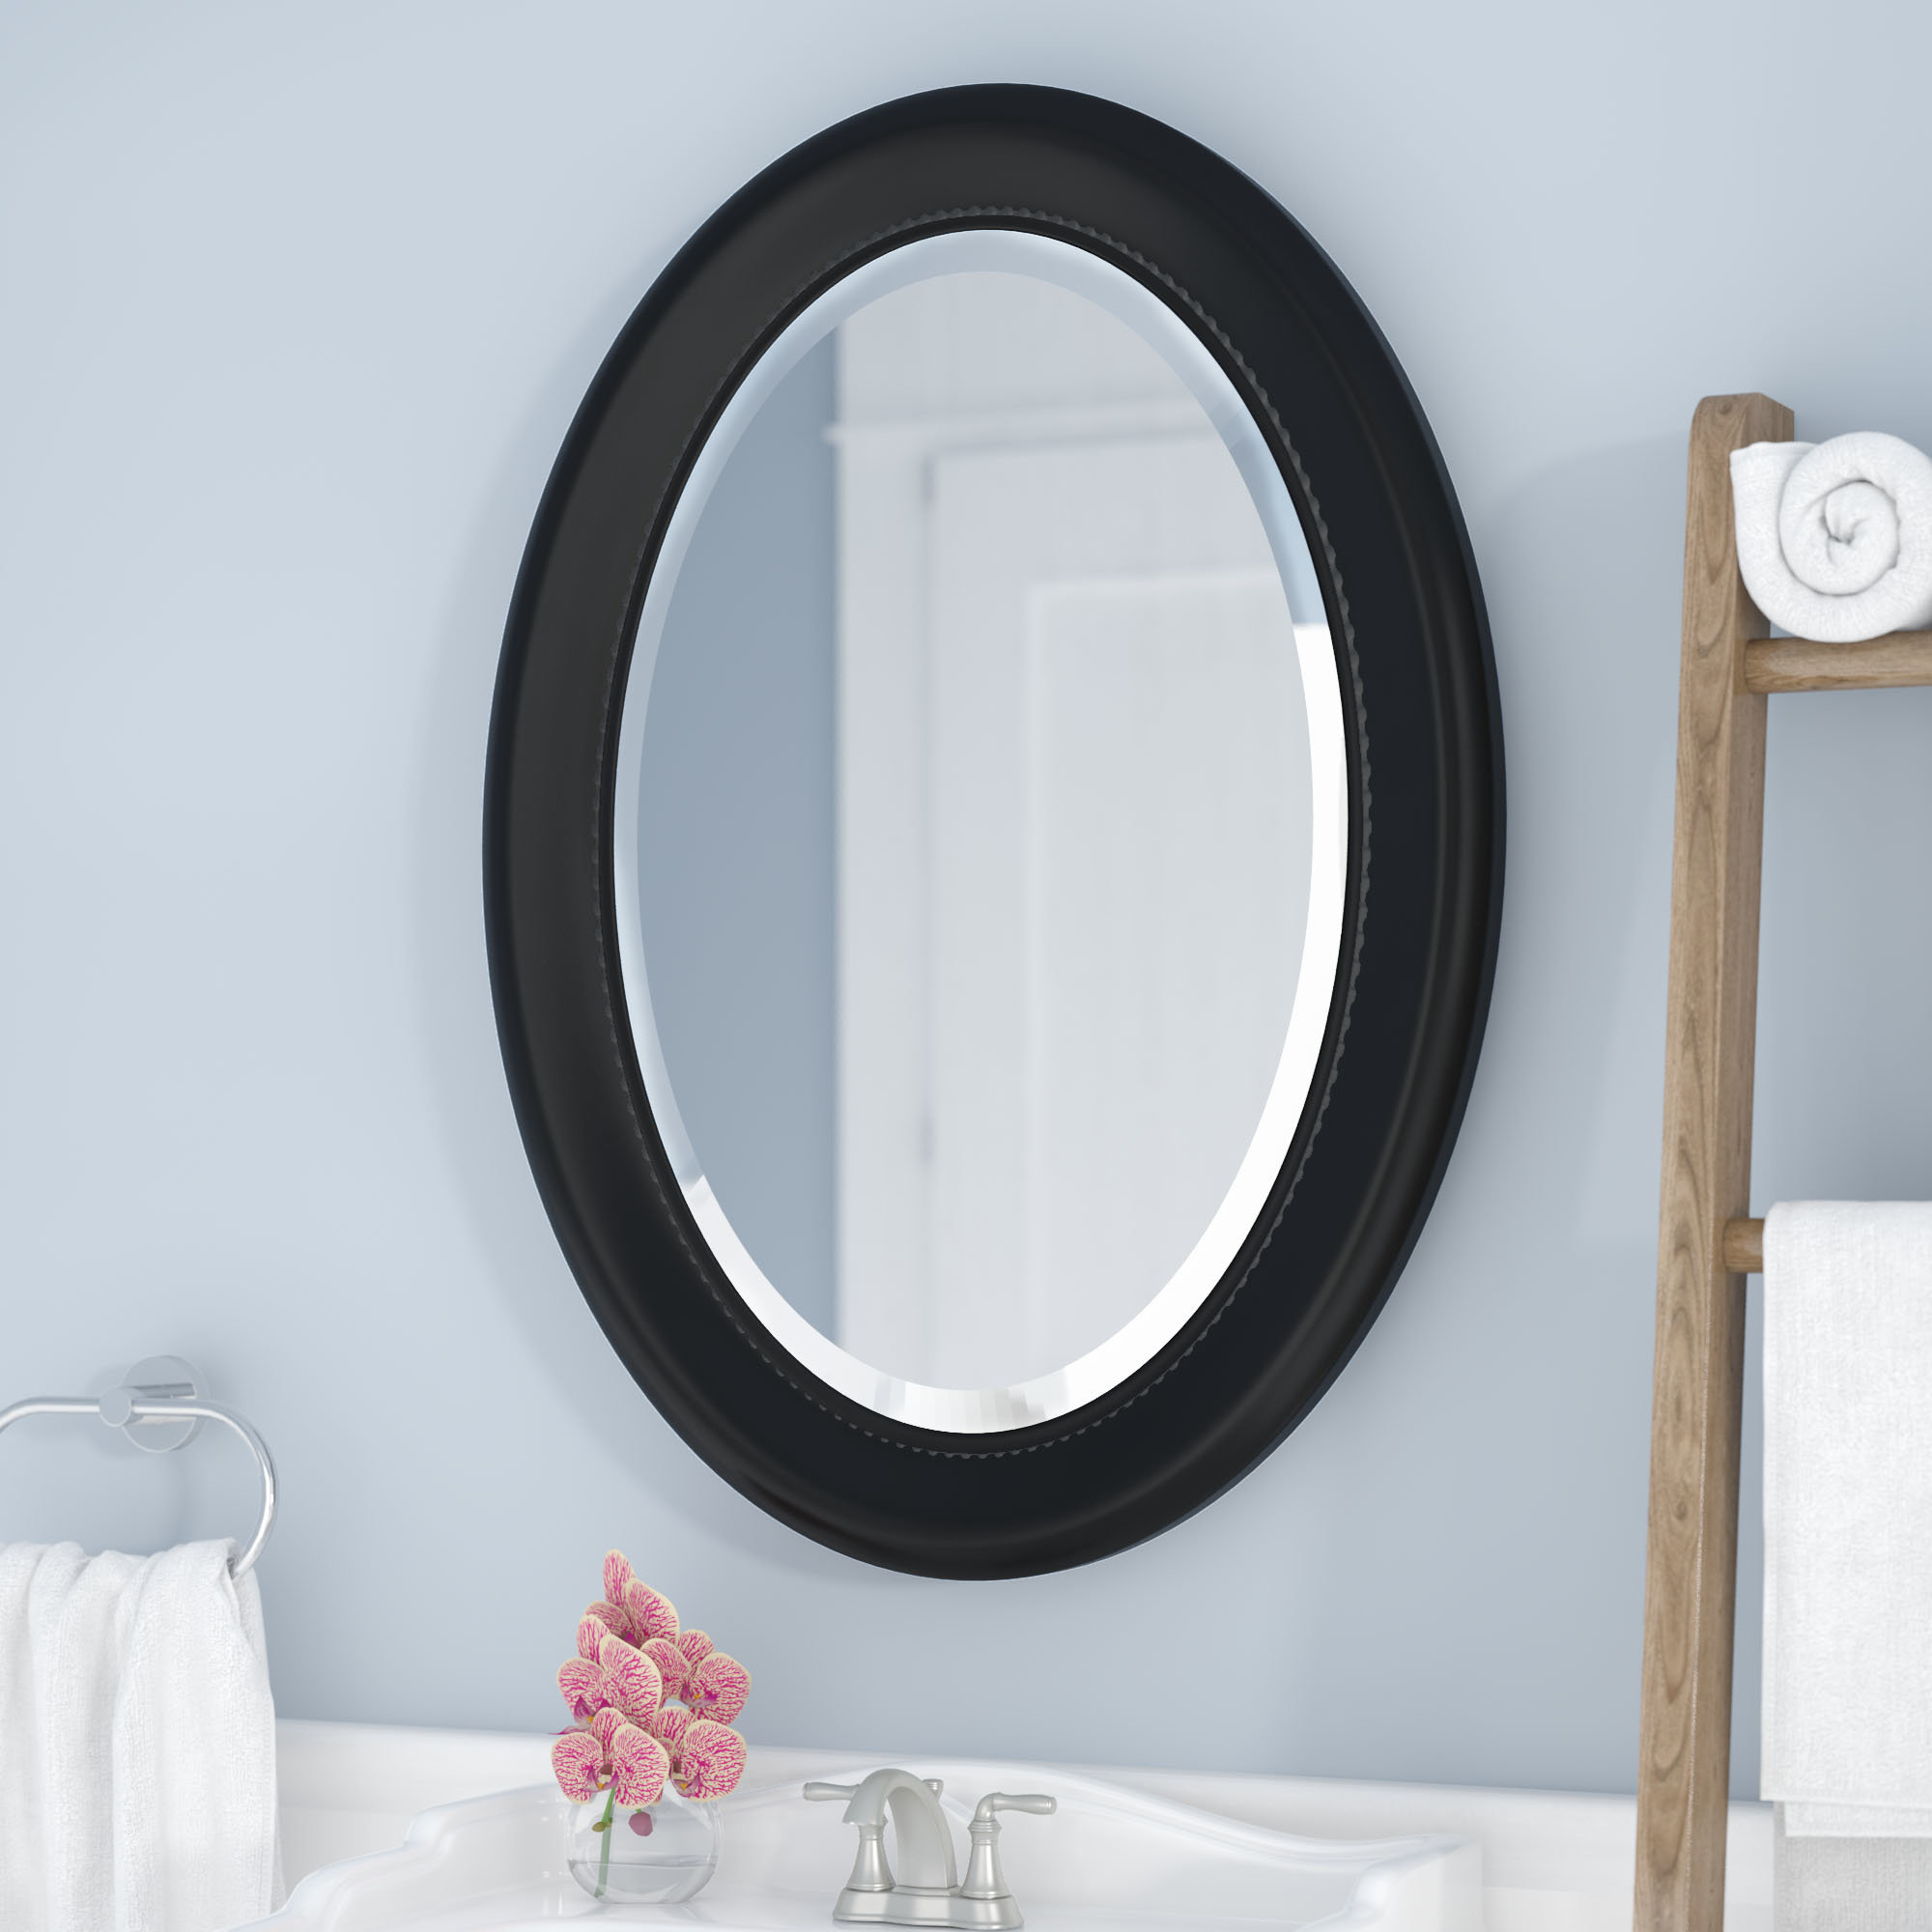 Elenor Oval Wall Mounted Accent Mirror Pertaining To Fashionable Pfister Oval Wood Wall Mirrors (View 17 of 20)